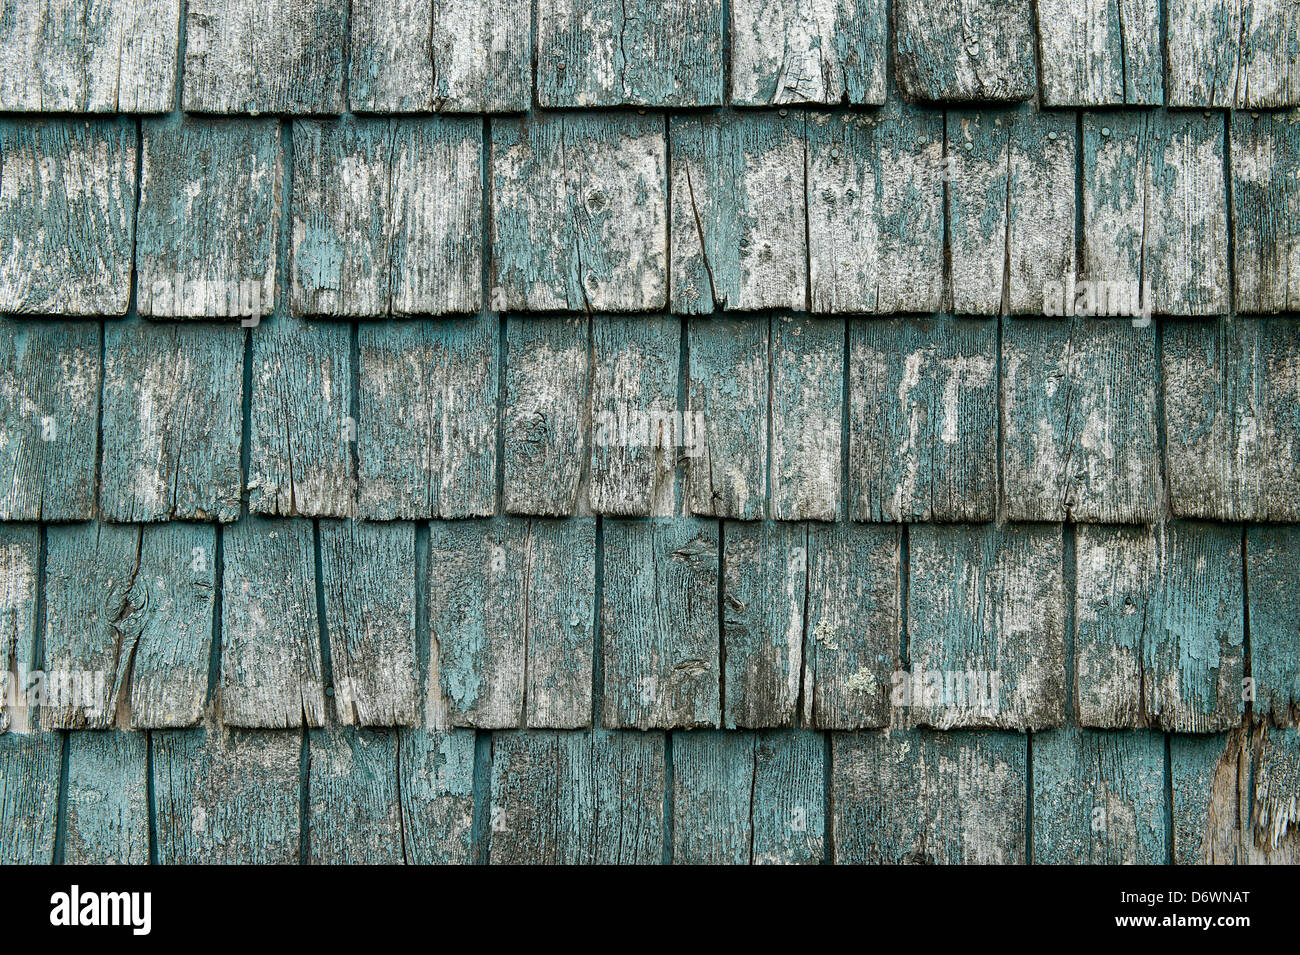 Weathered wooden shingle detail. - Stock Image